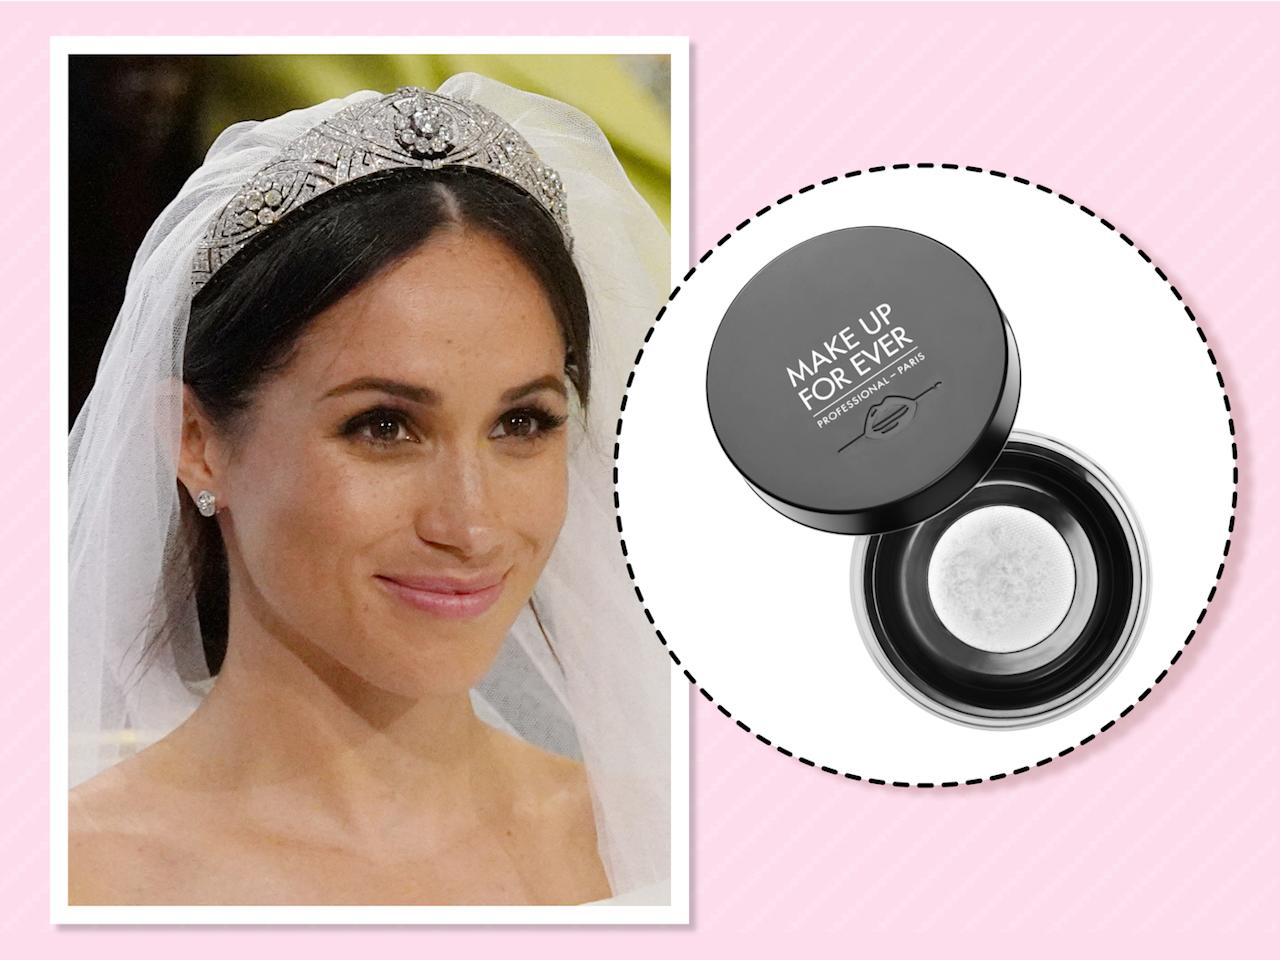 "<p>When she is wearing makeup, you can count on the duchess to finish her look with a light dusting of this setting powder to ensure it lasts all day long. ""I love the Make Up For Ever HD Powder,"" <a rel=""nofollow"" href=""https://www.allure.com/story/meghan-markle-suits-beauty-tips?verso=true"">she told <em>Allure</em>.</a> (Photo: Getty Images)<br /><strong><a rel=""nofollow"" href=""https://fave.co/2PpD5AL"">Shop it</a>:</strong> $36, <a rel=""nofollow"" href=""https://fave.co/2PpD5AL"">sephora.com</a> </p>"